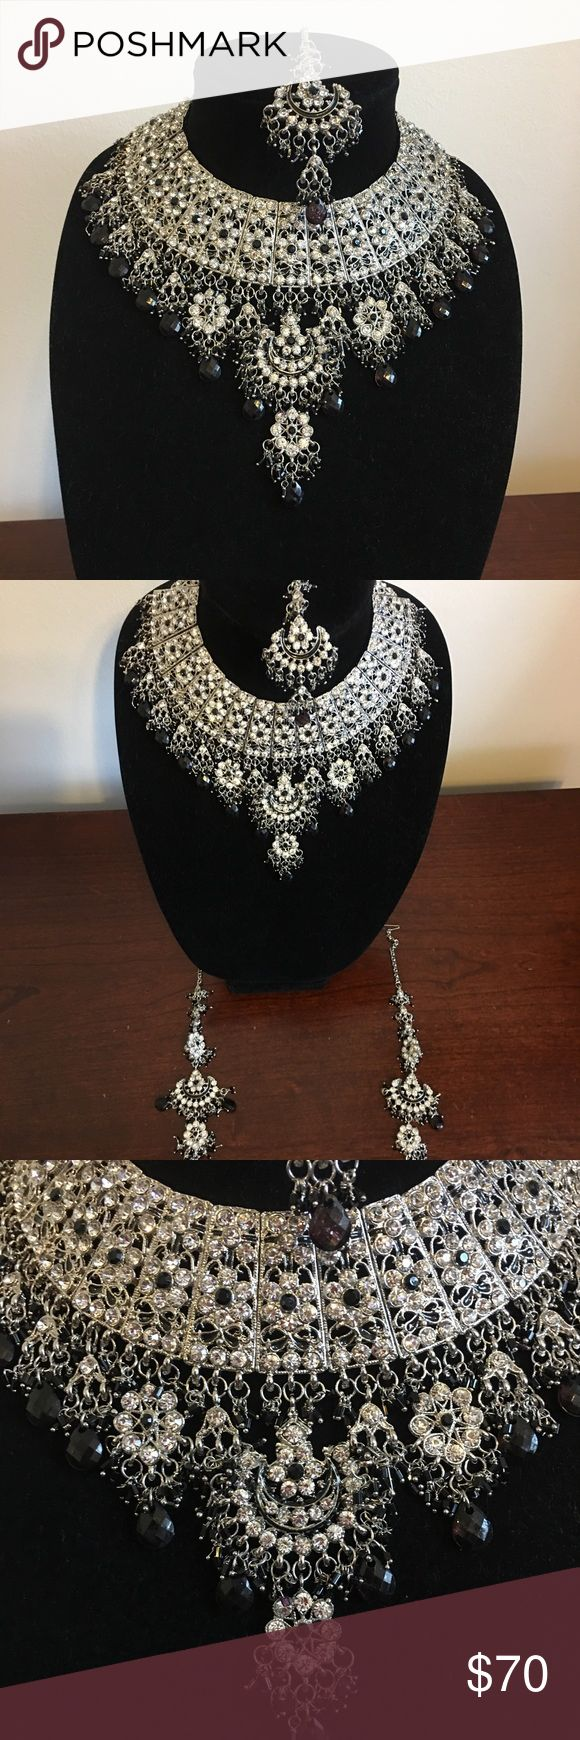 Indian/Pakistani Jewelry Brand New Bollywood Inspired Jewelry Set-  Necklace, earrings, and a head piece (tikka)   #fashion #indian #pakistani #bollywood #jewelry #necklace #earrings Jewelry Necklaces